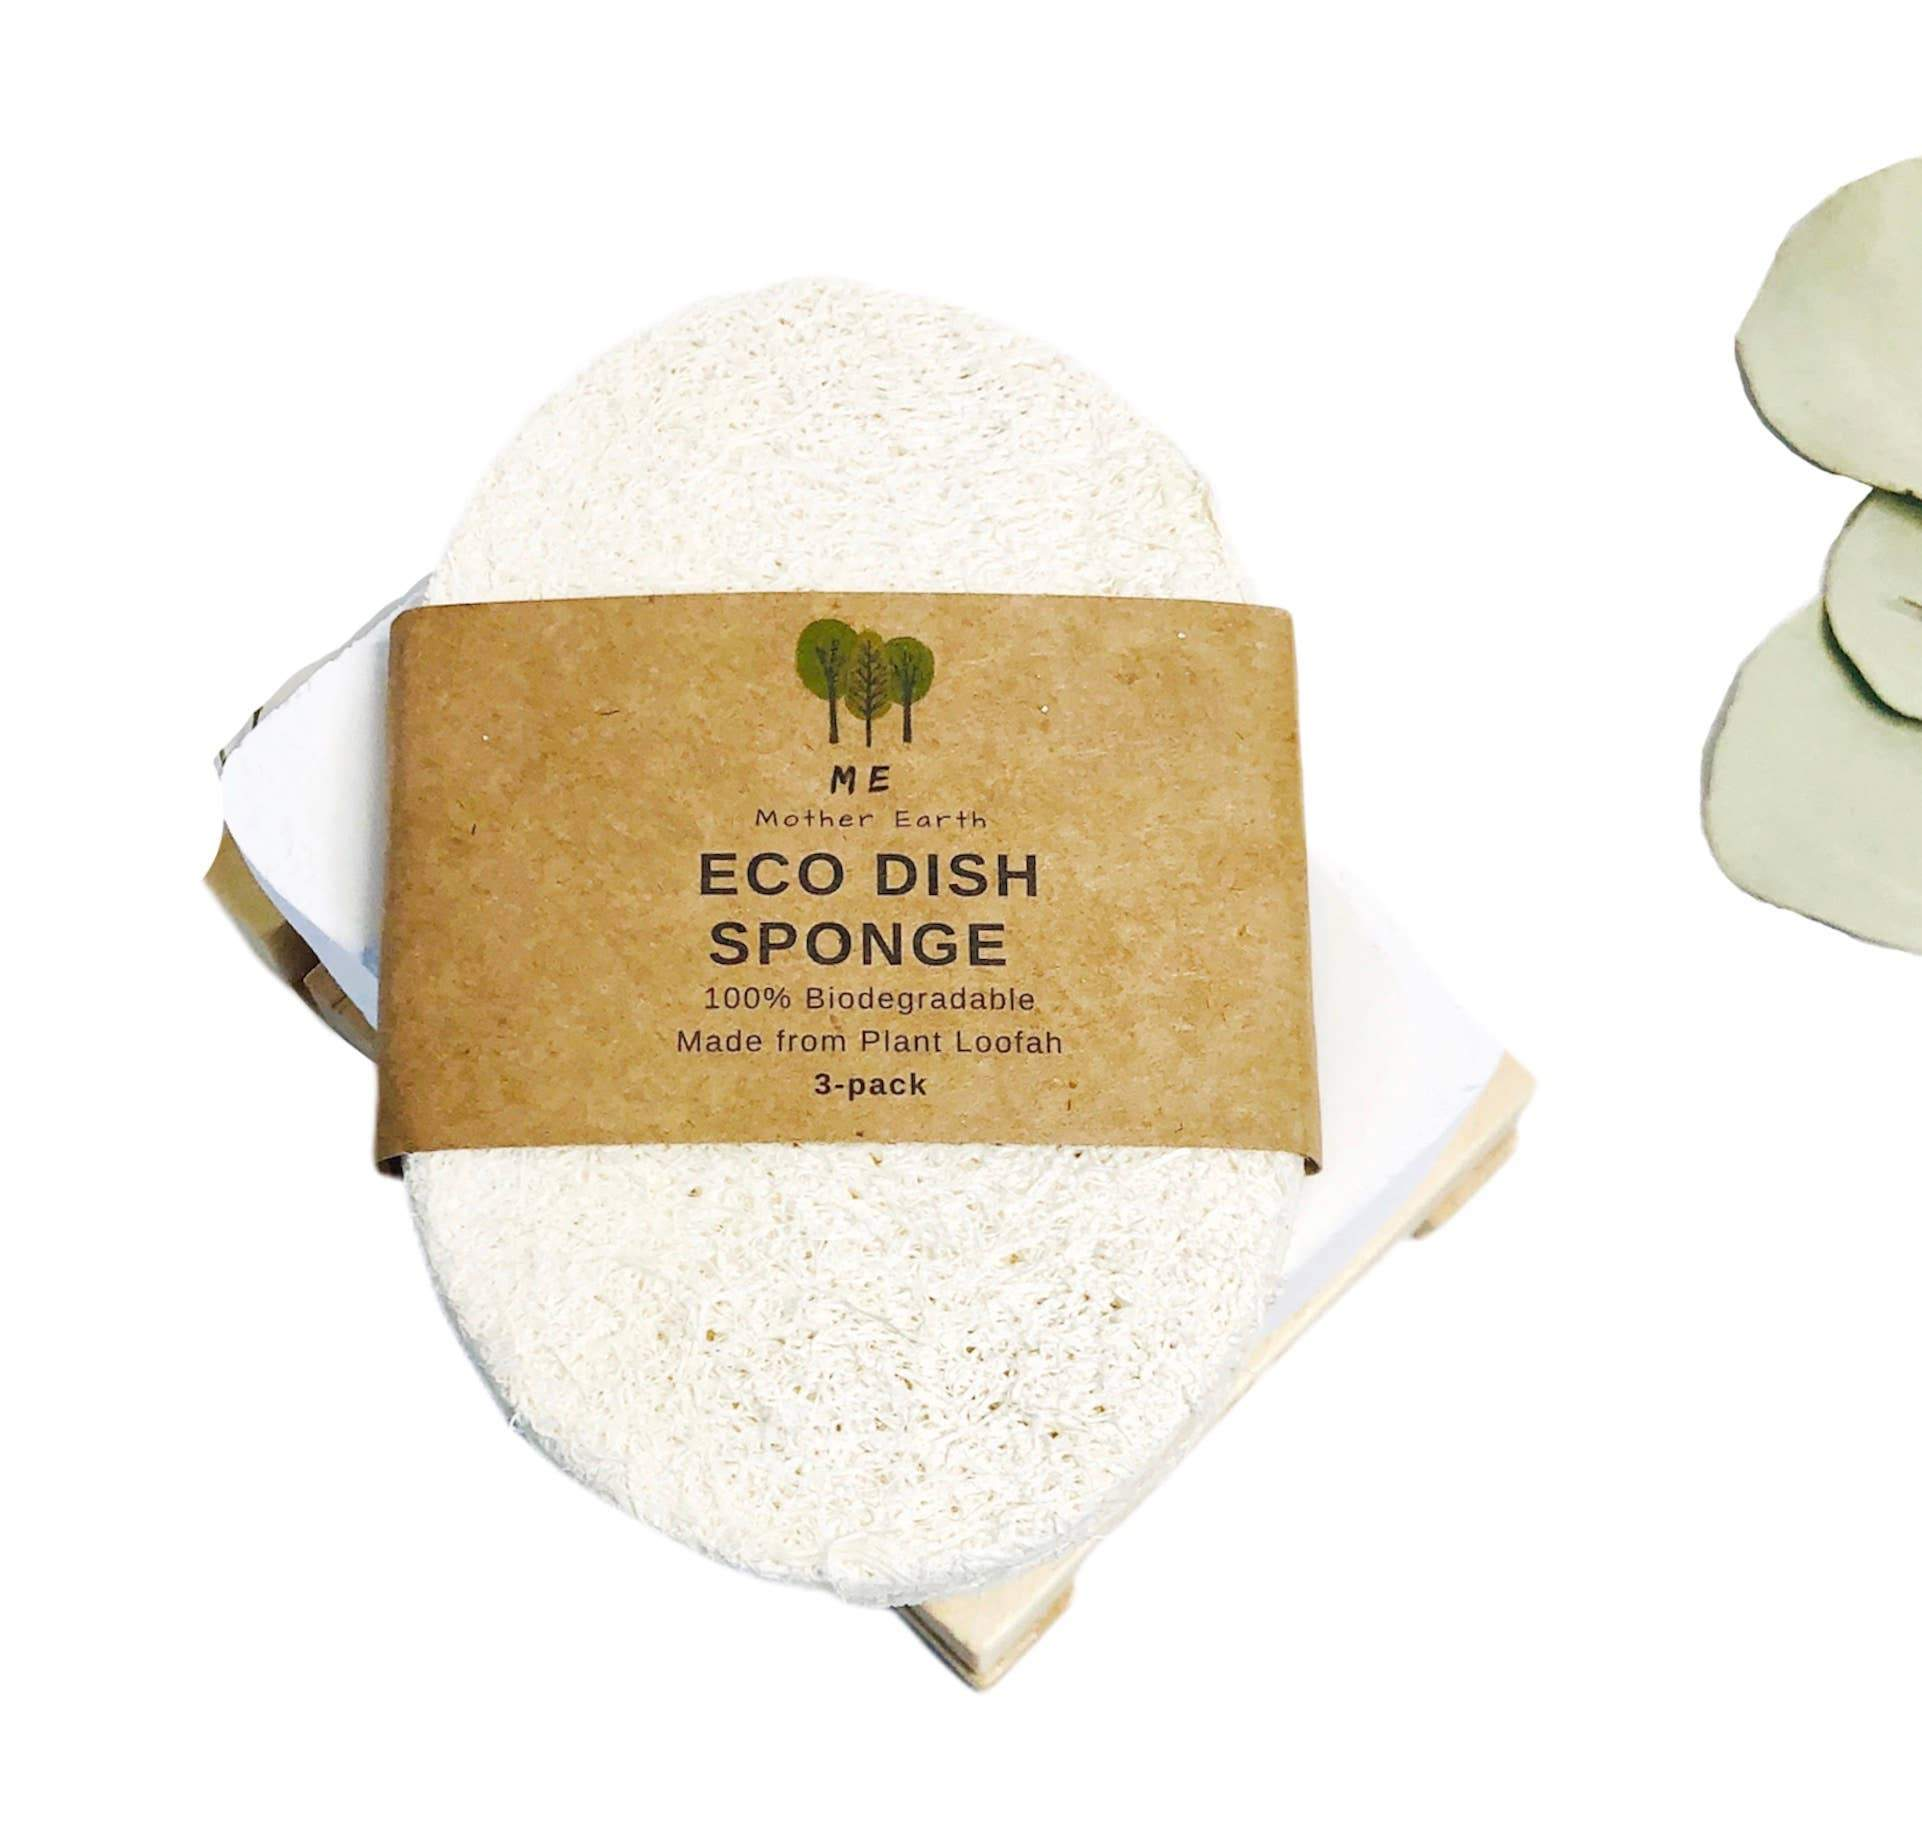 These 100% biodegradable Loofah Dish Sponges replace traditional foam and plastic sponges for dishwashing and household cleaning. Made 100% from loofah plants!  Expands in size and softens in water to work like a typical dish sponge, but without the plastic waste.